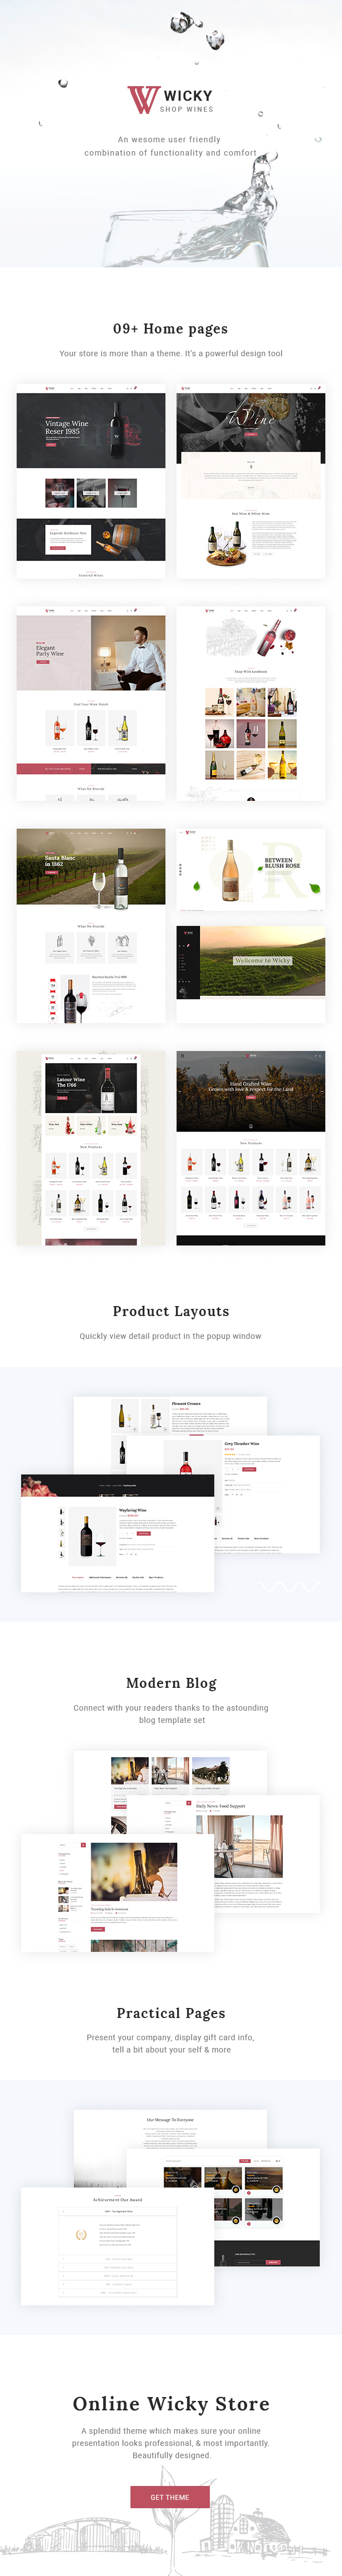 Wicky – Wine Shop WooCommerce Theme - 1